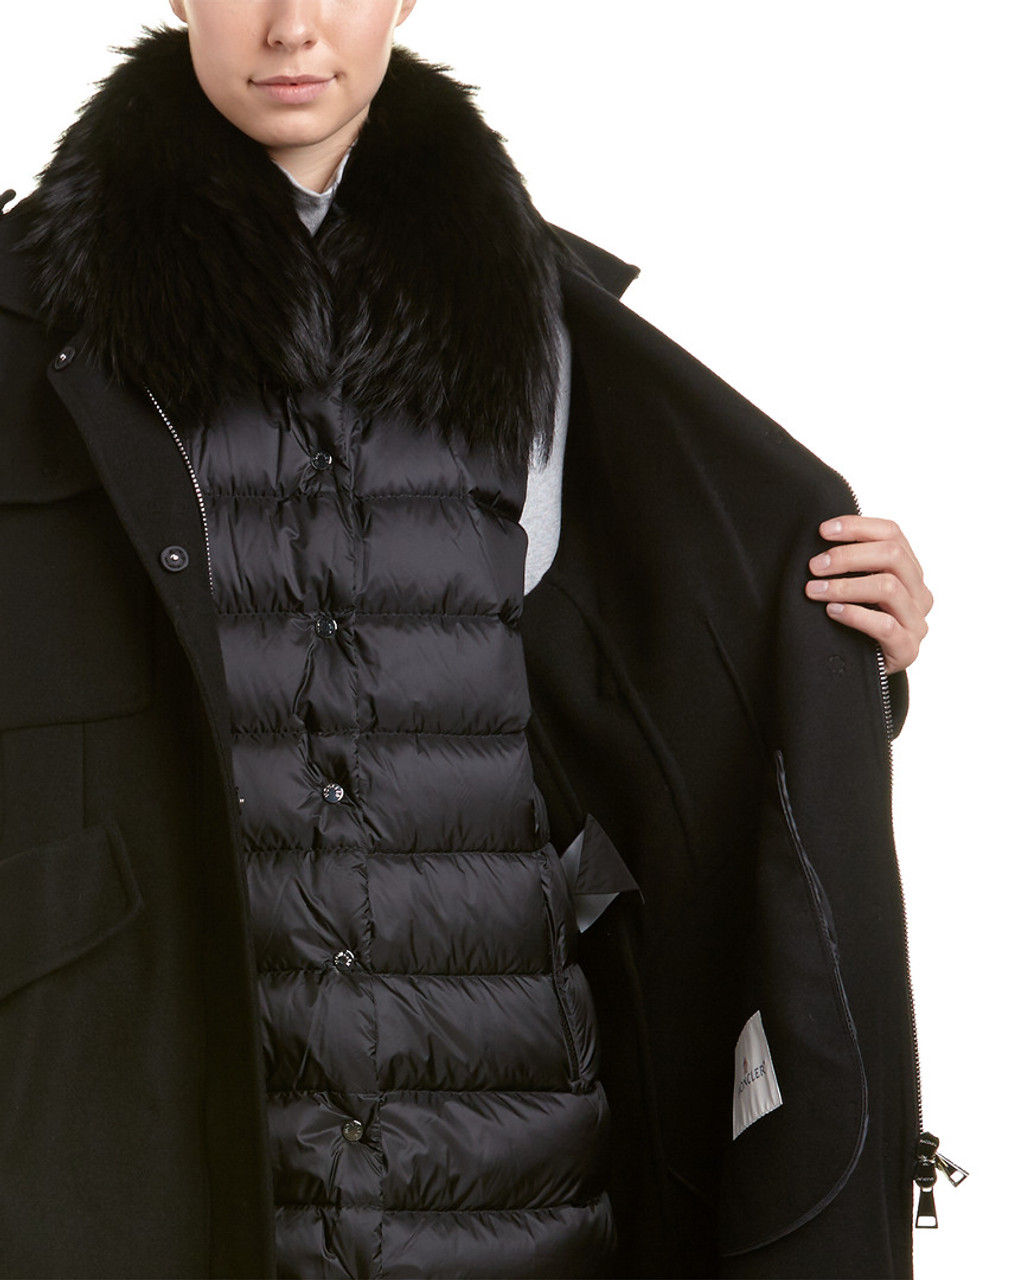 aaad1c398 Moncler Philliera Wool   Cashmere-Blend Coat~1411583388 - Herbergers